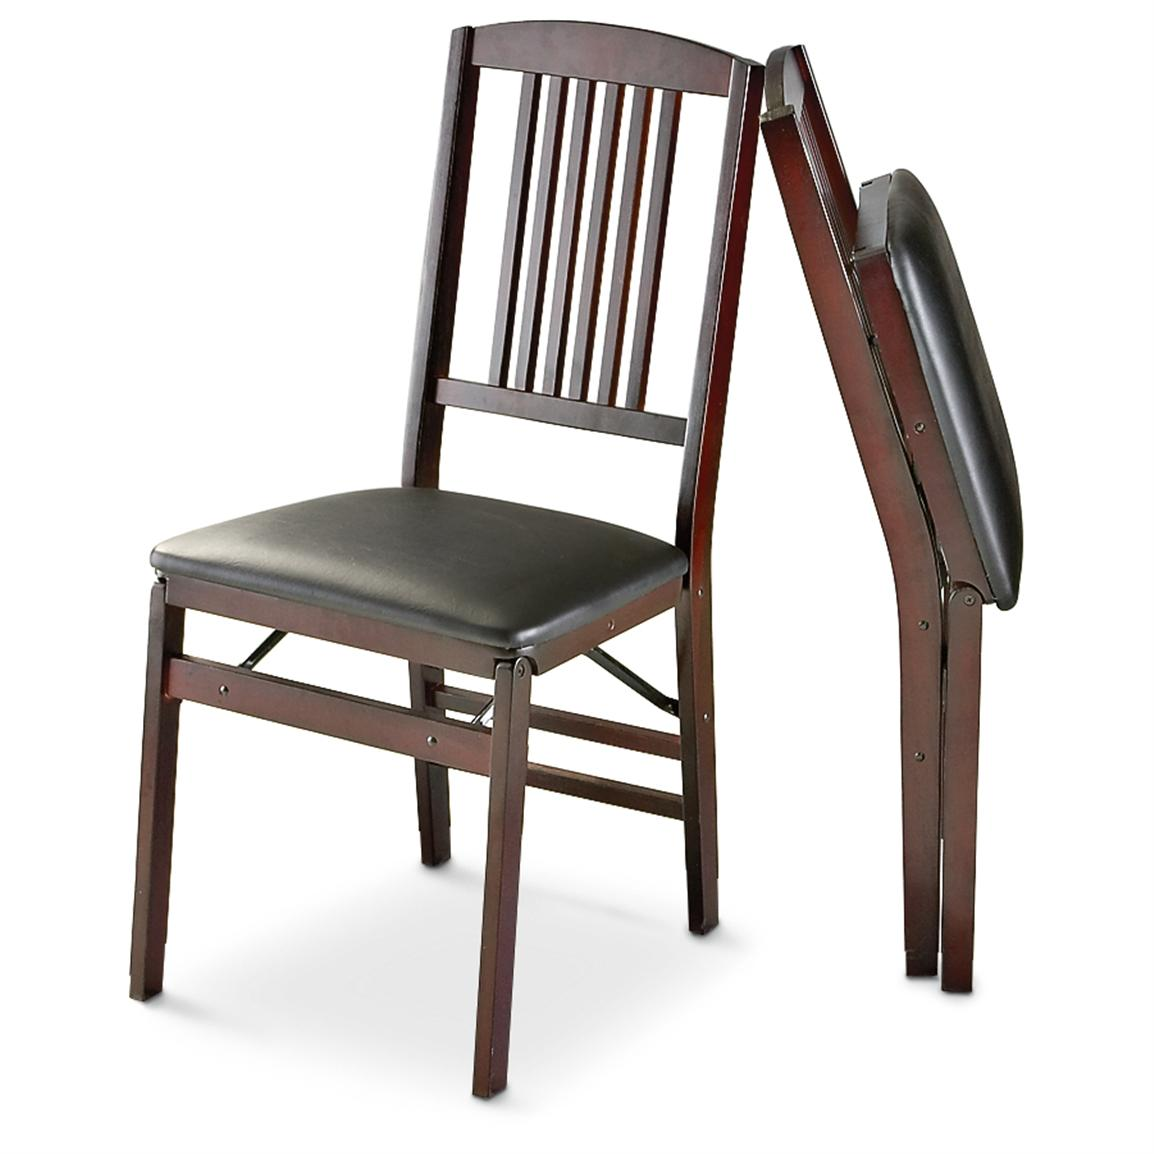 folding chair kitchen office support for sciatica 2 cosco wood mission chairs 179869